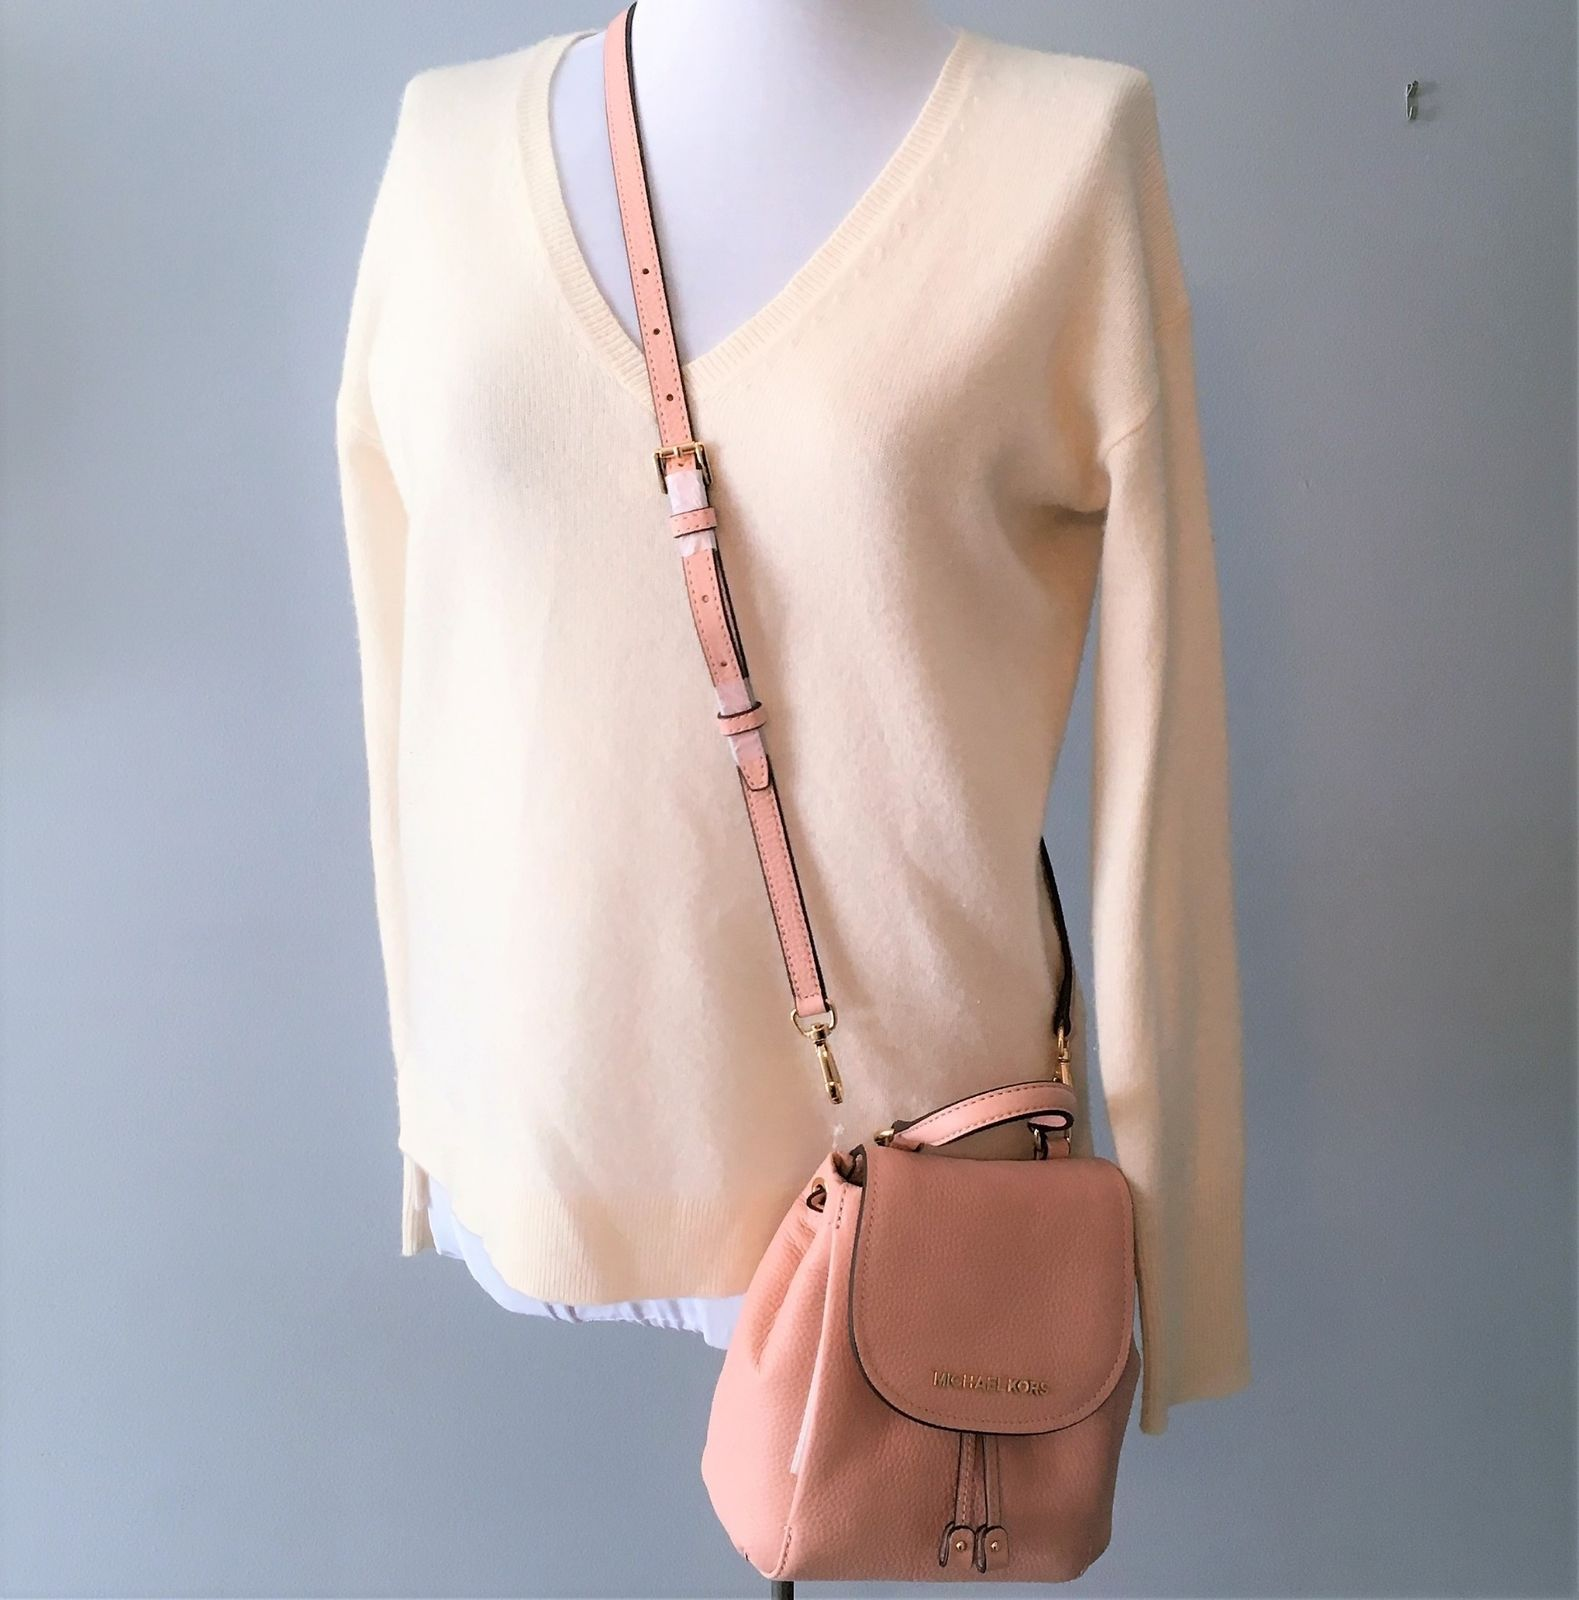 993ba8d6ad17 Michael Kors Riley small Leather flap Backpack crossbody NWT